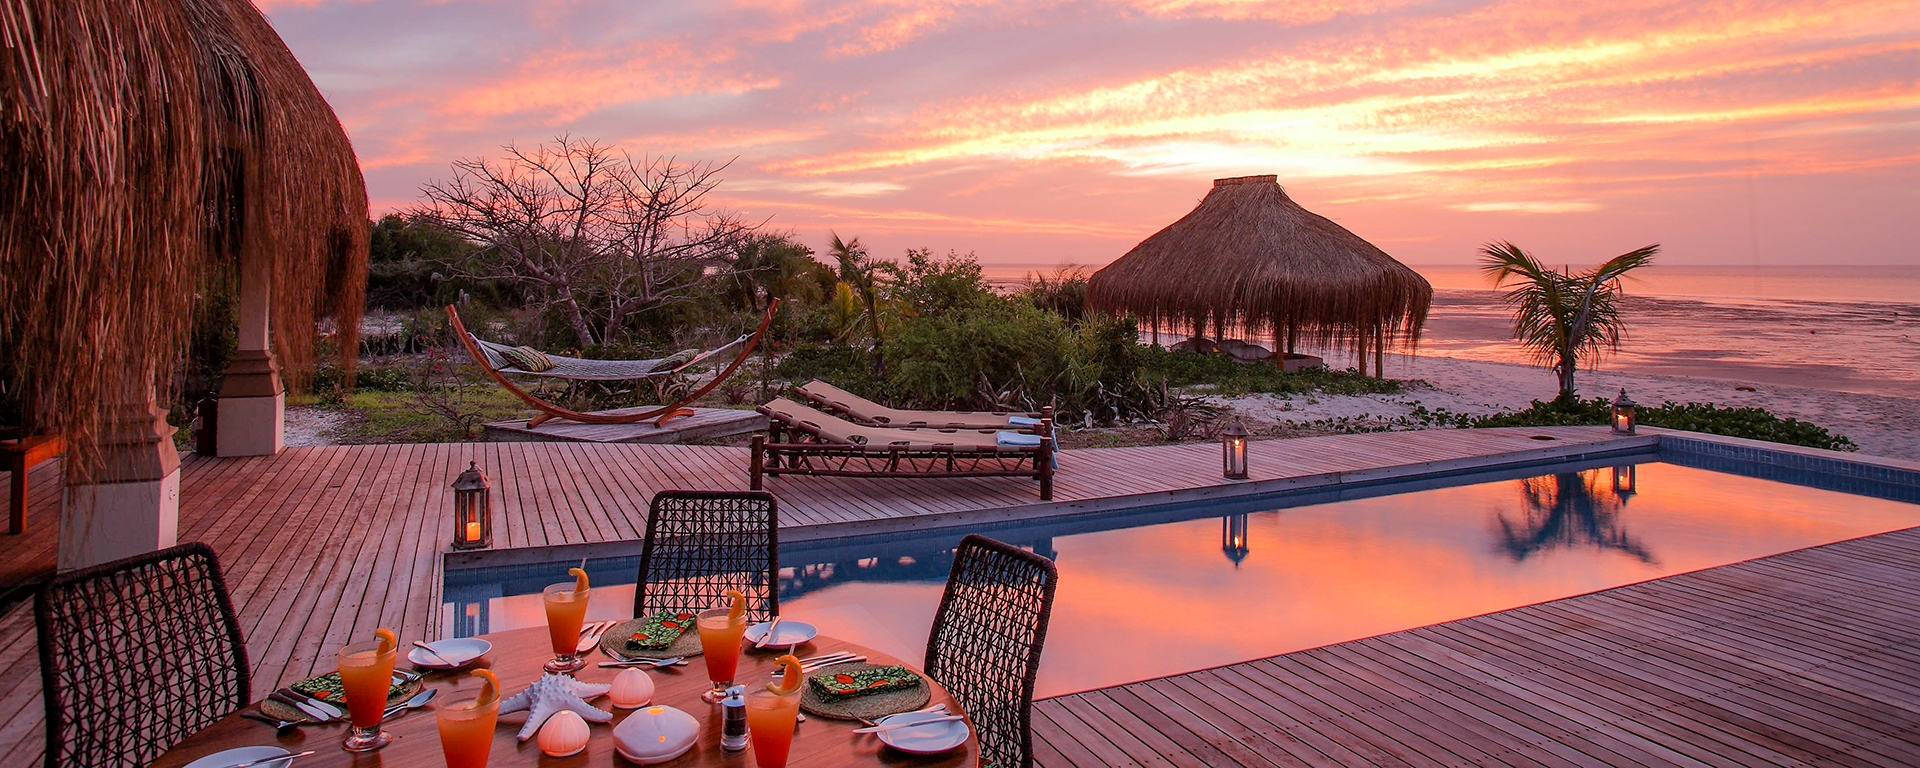 Villa Amizade in Mozambique: the ultimate combination of warm water, pristine beach and barefoot luxury.